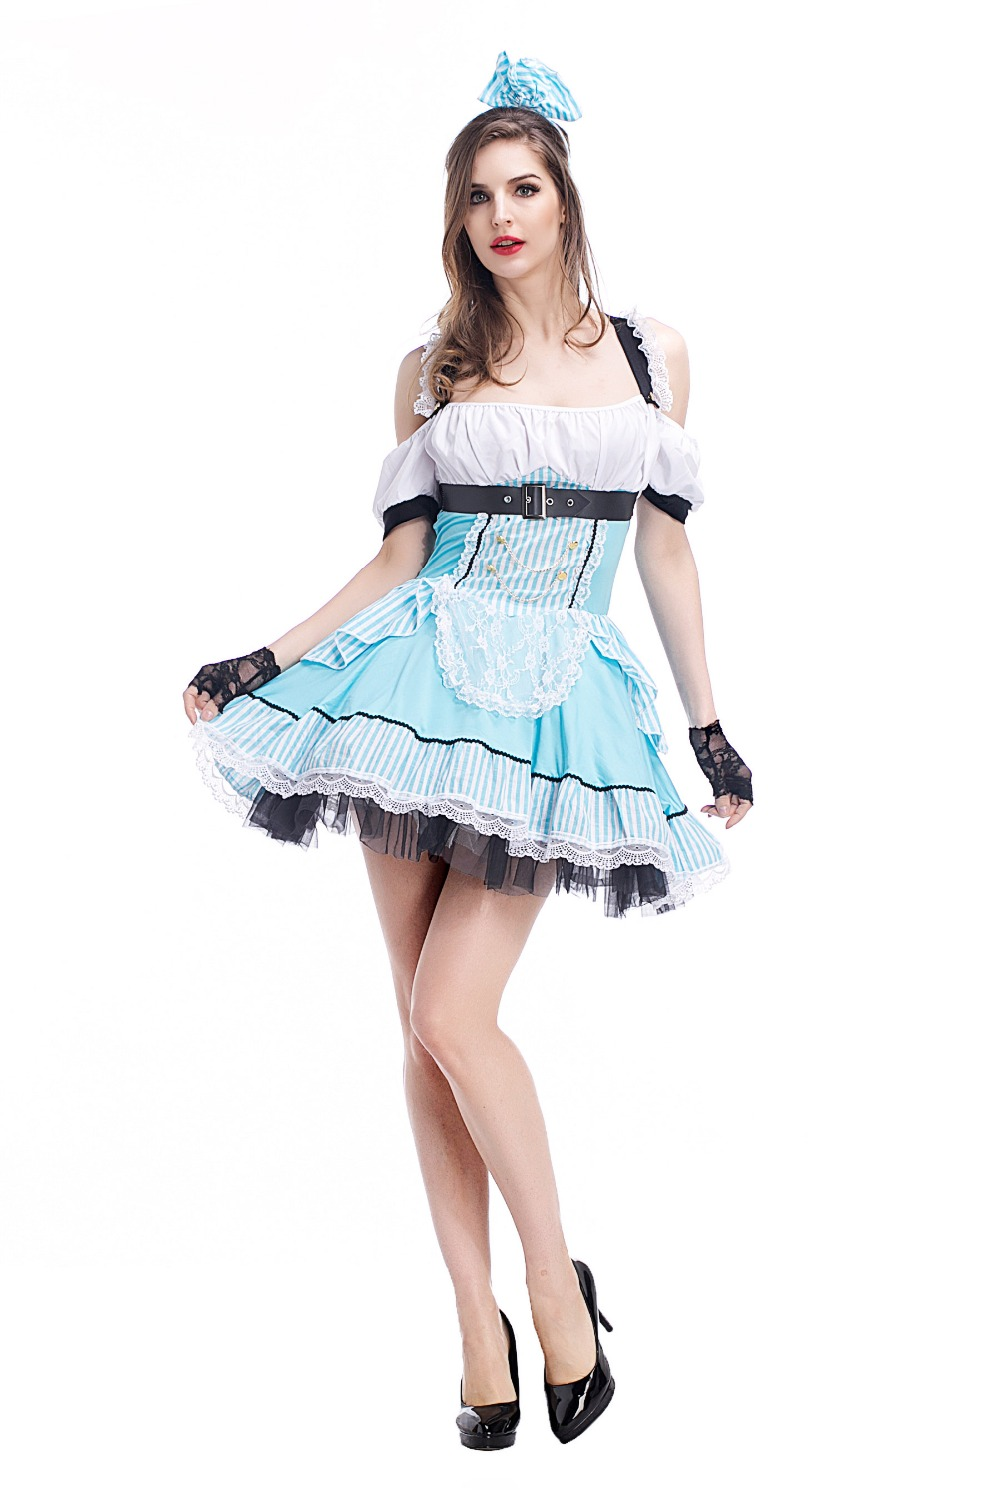 <font><b>Alice</b></font> <font><b>in</b></font> <font><b>Wonderland</b></font> <font><b>Costume</b></font> <font><b>Sexy</b></font> Adult Women Blue French Maid <font><b>Costume</b></font> Halloween Carnival Fancy Party Dress image